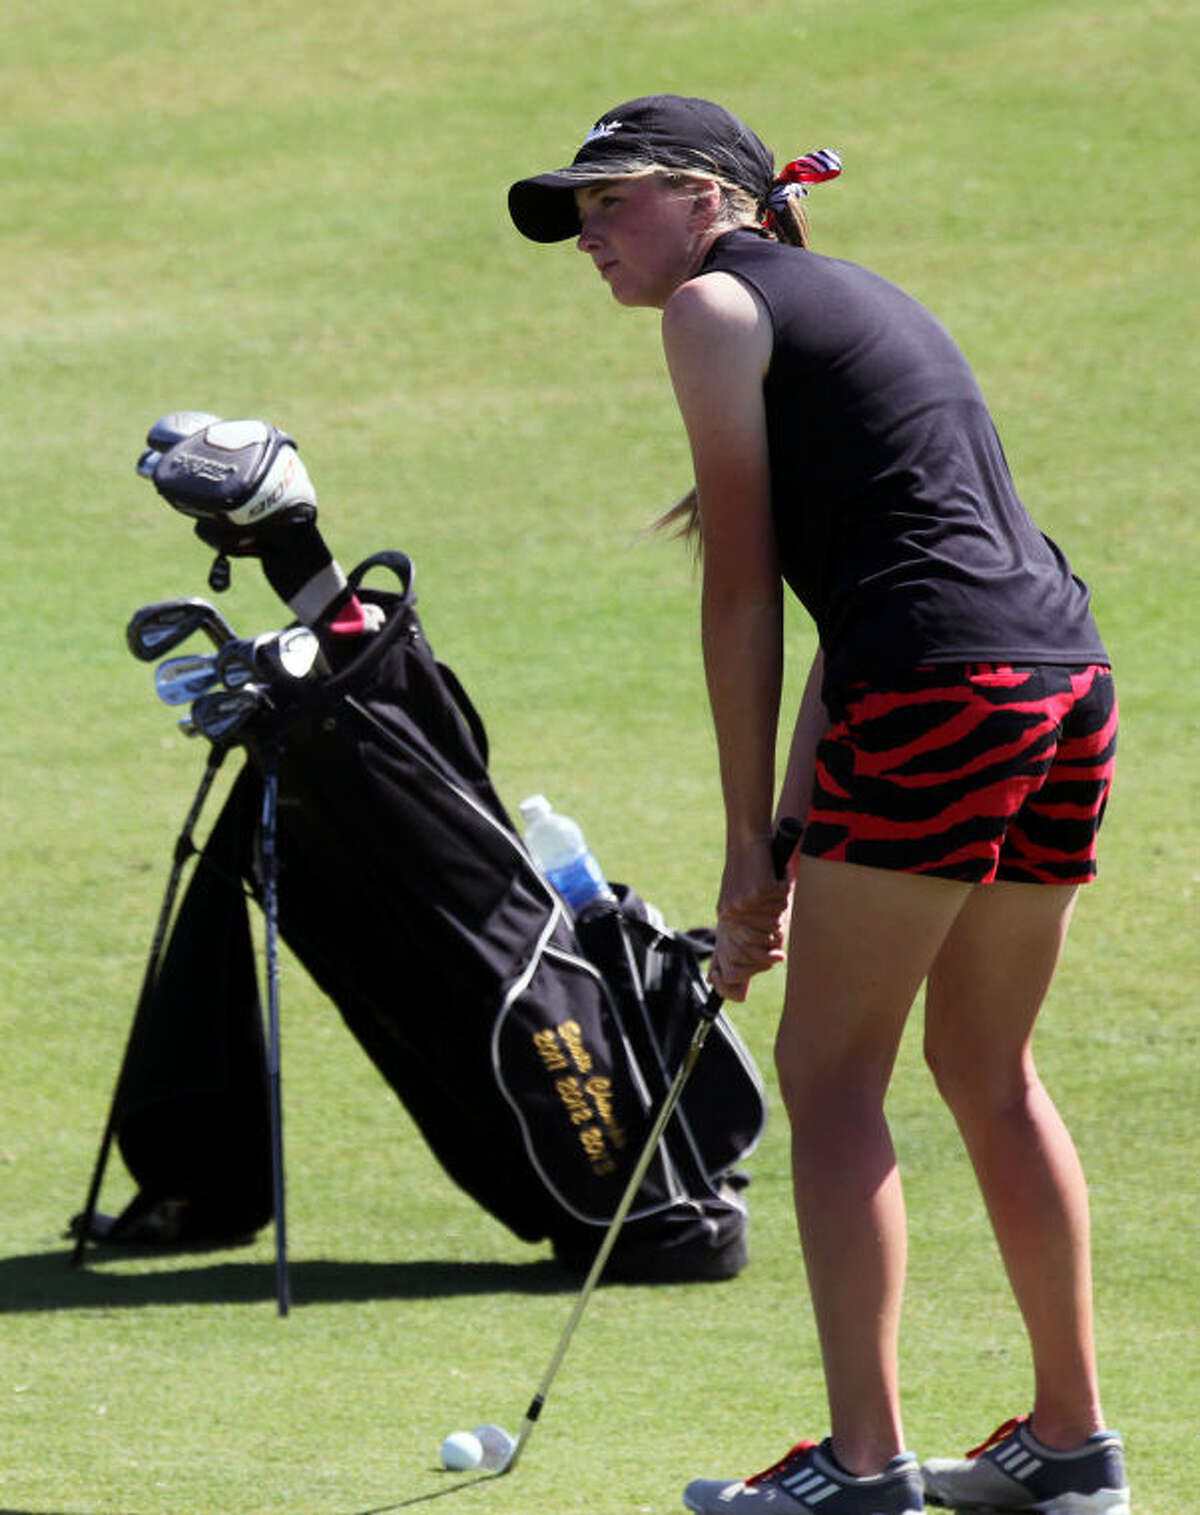 Andrews Sarah Black adjusts her shot towards the hole during the second and final day of the Class 3A State Golf Championships Tuesday at the Hyatt Resort Lost Pines Golf Course.